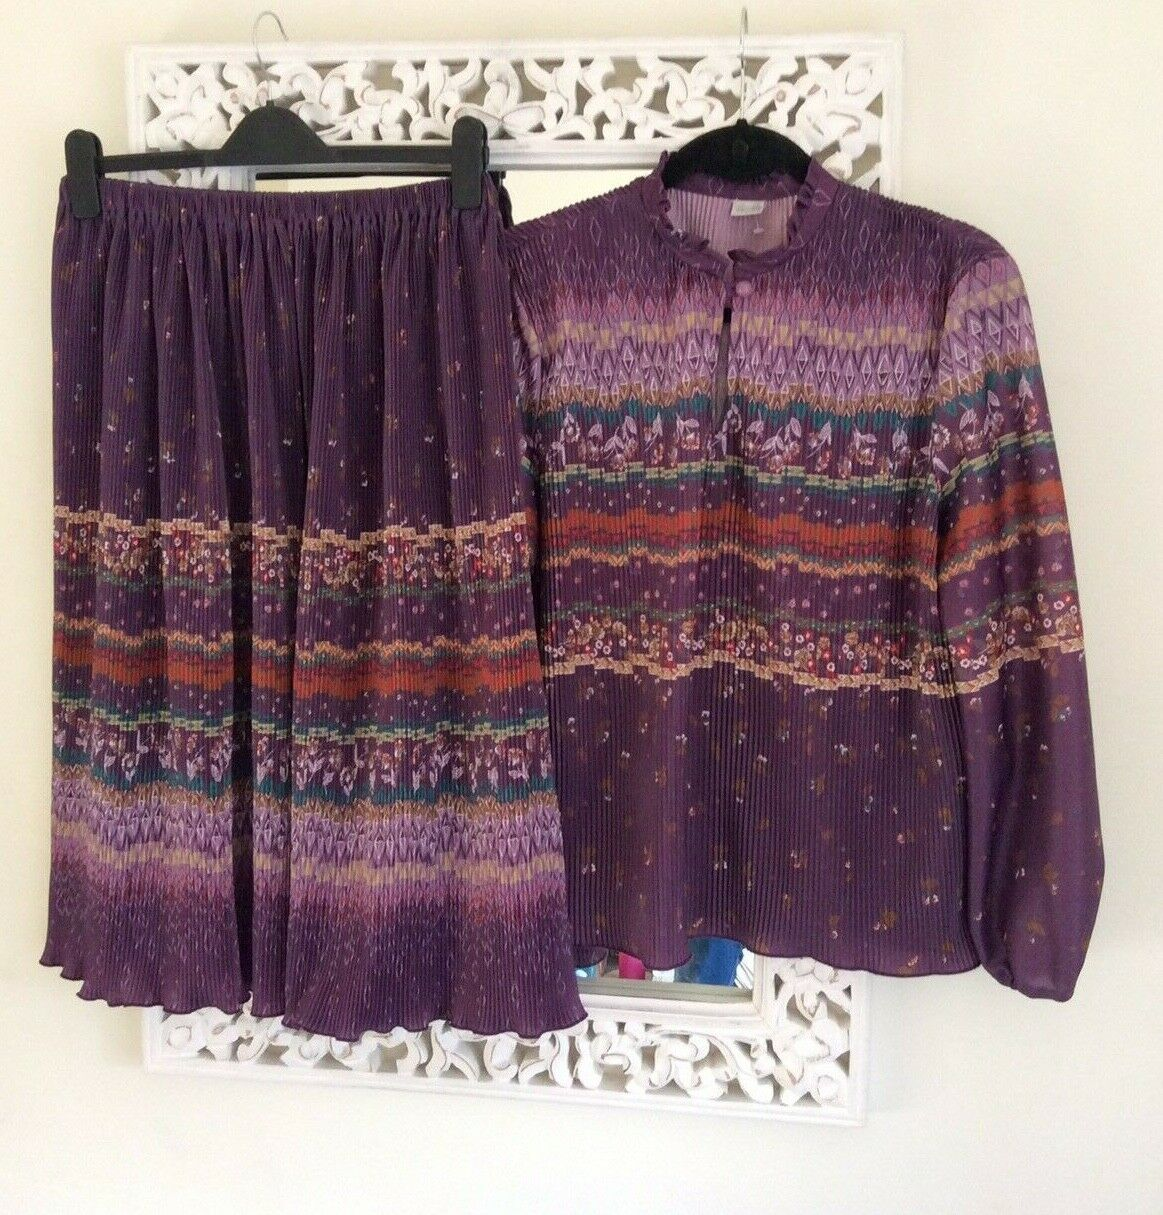 Vintage Purple Patterned Plisse Skirt and Top Co-Ord, UK Size 10-12 Immaculate